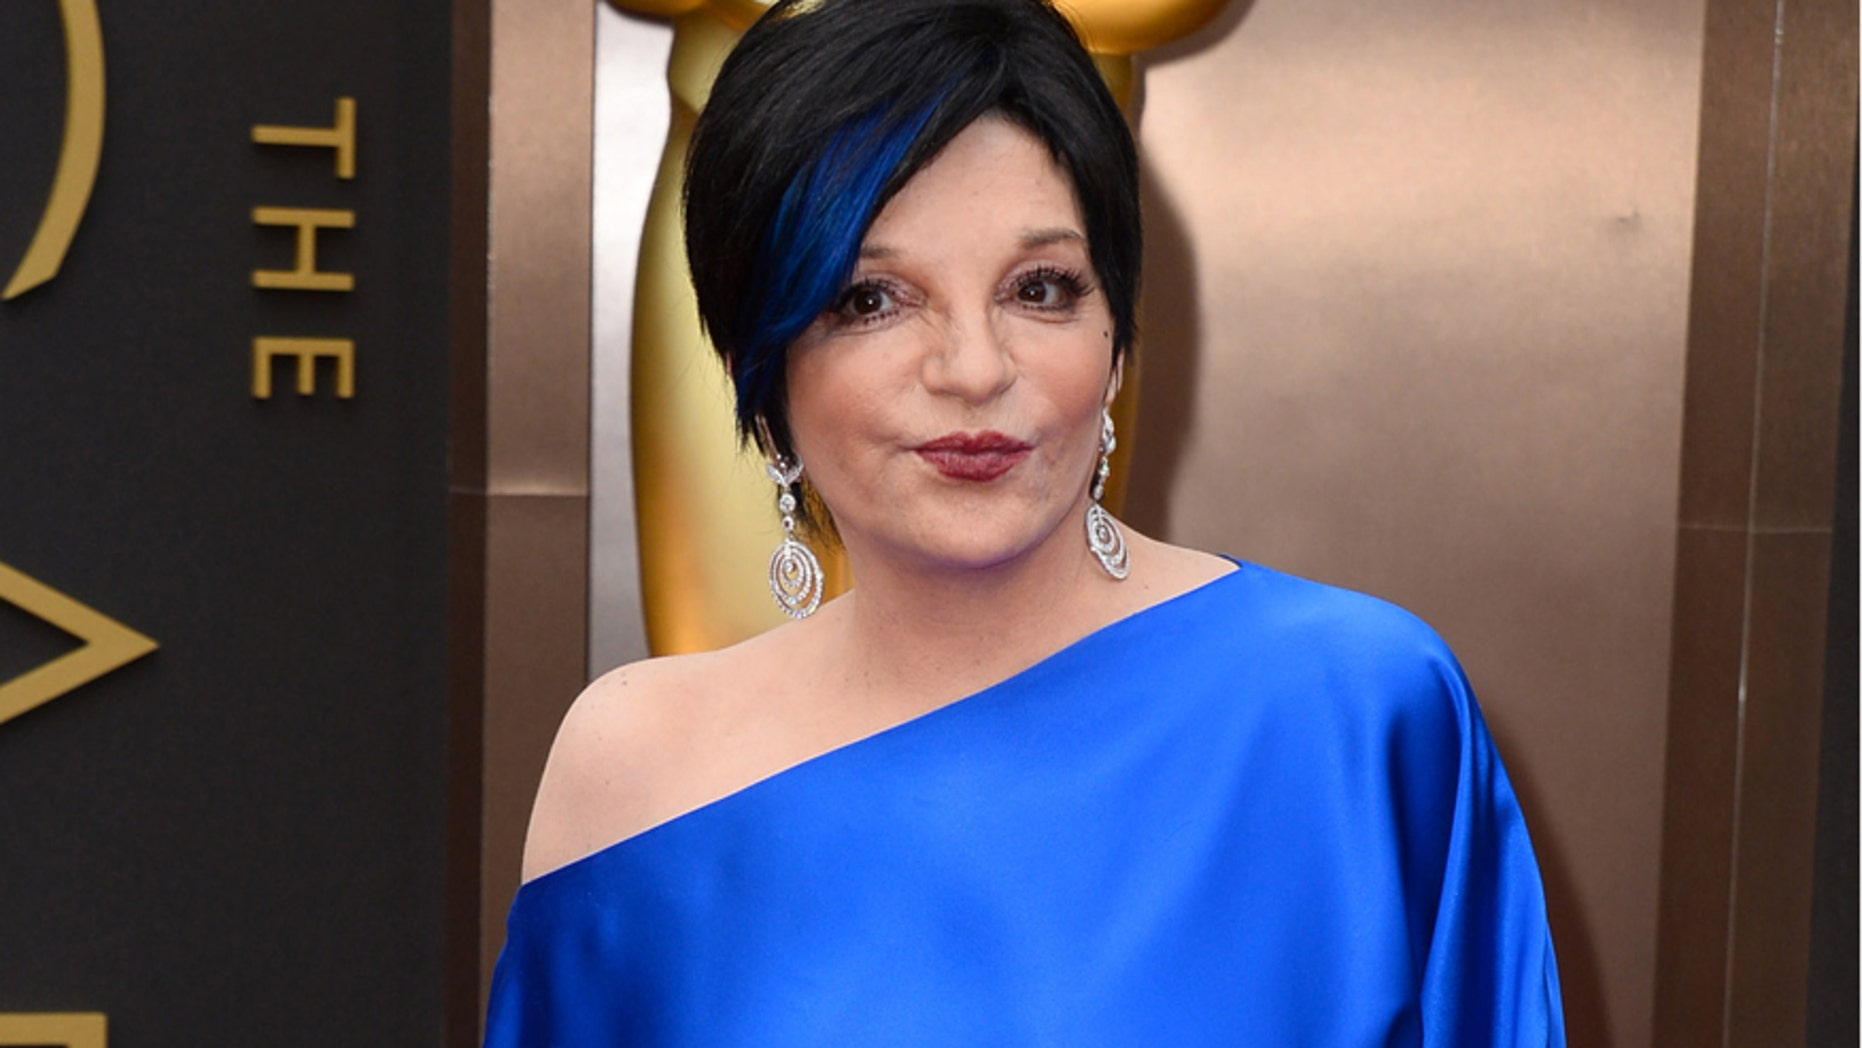 FILE - In this March 2, 2014 file photo, Liza Minnelli arrives at the Oscars in Los Angeles.  Minnelli is said to be resting comfortably in a California hospital after undergoing back surgery this week and shes thanking fans for their well wishes.